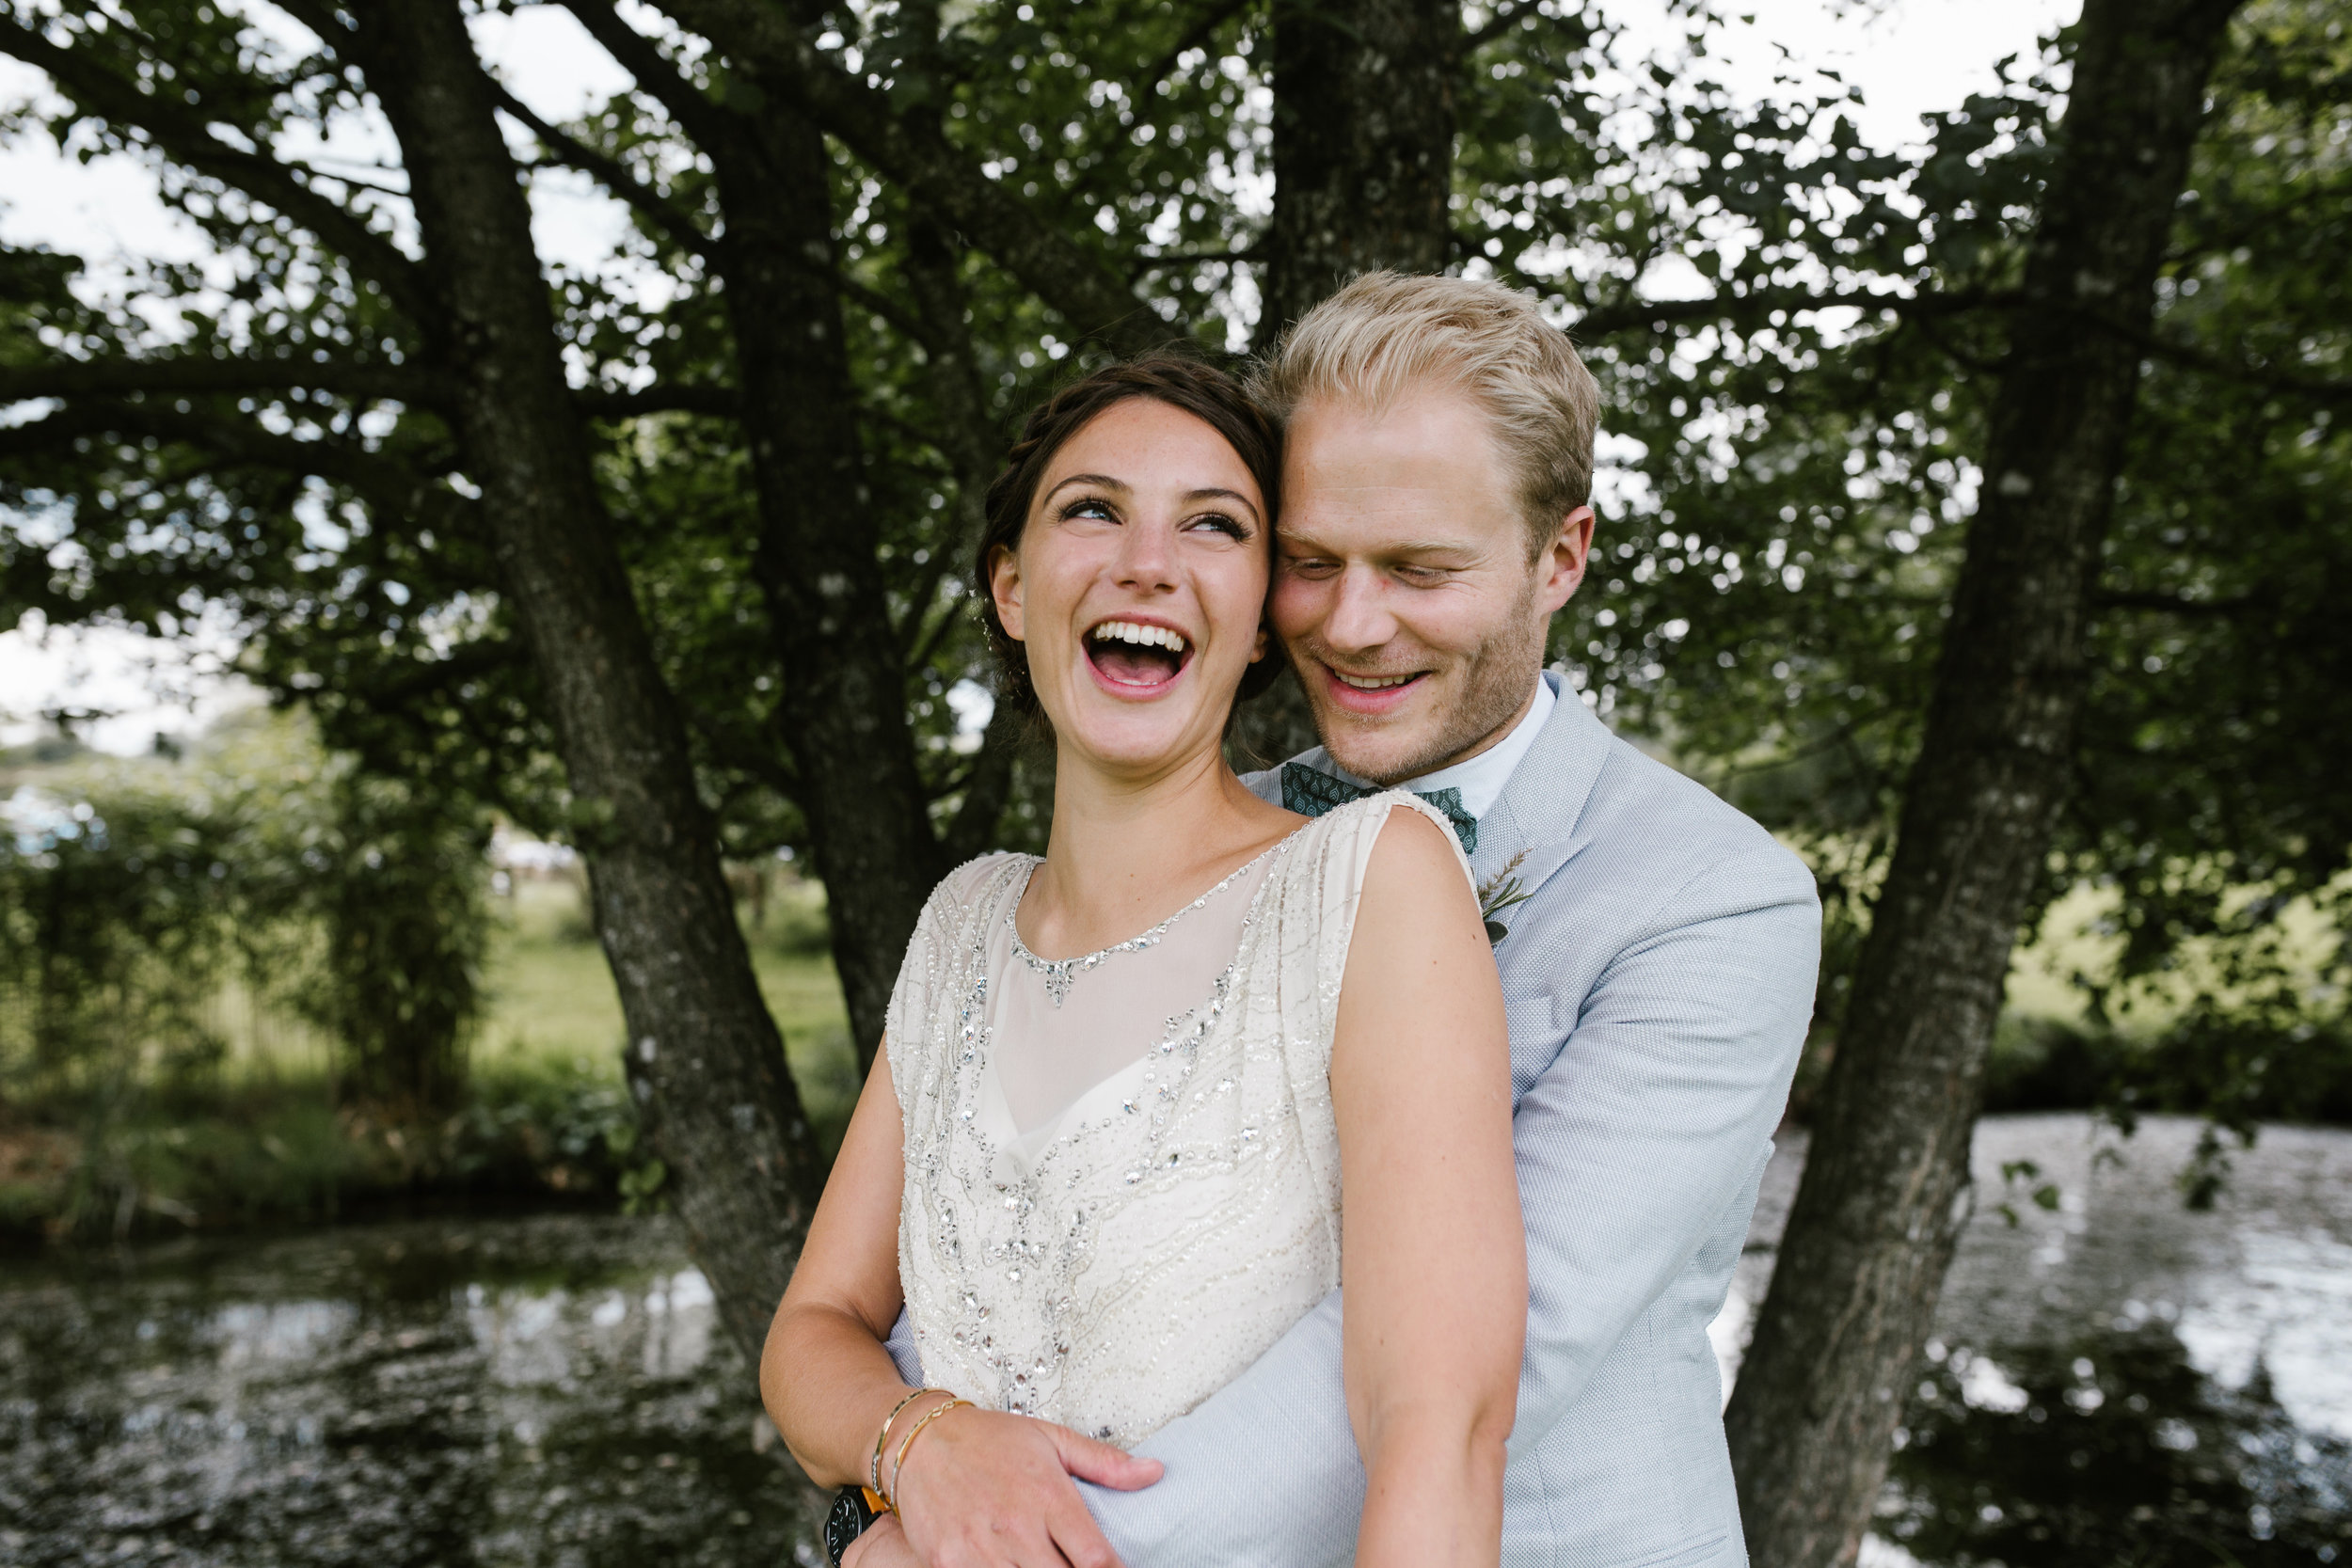 happy fun photo of bride and groom holiding each other close and laughing together